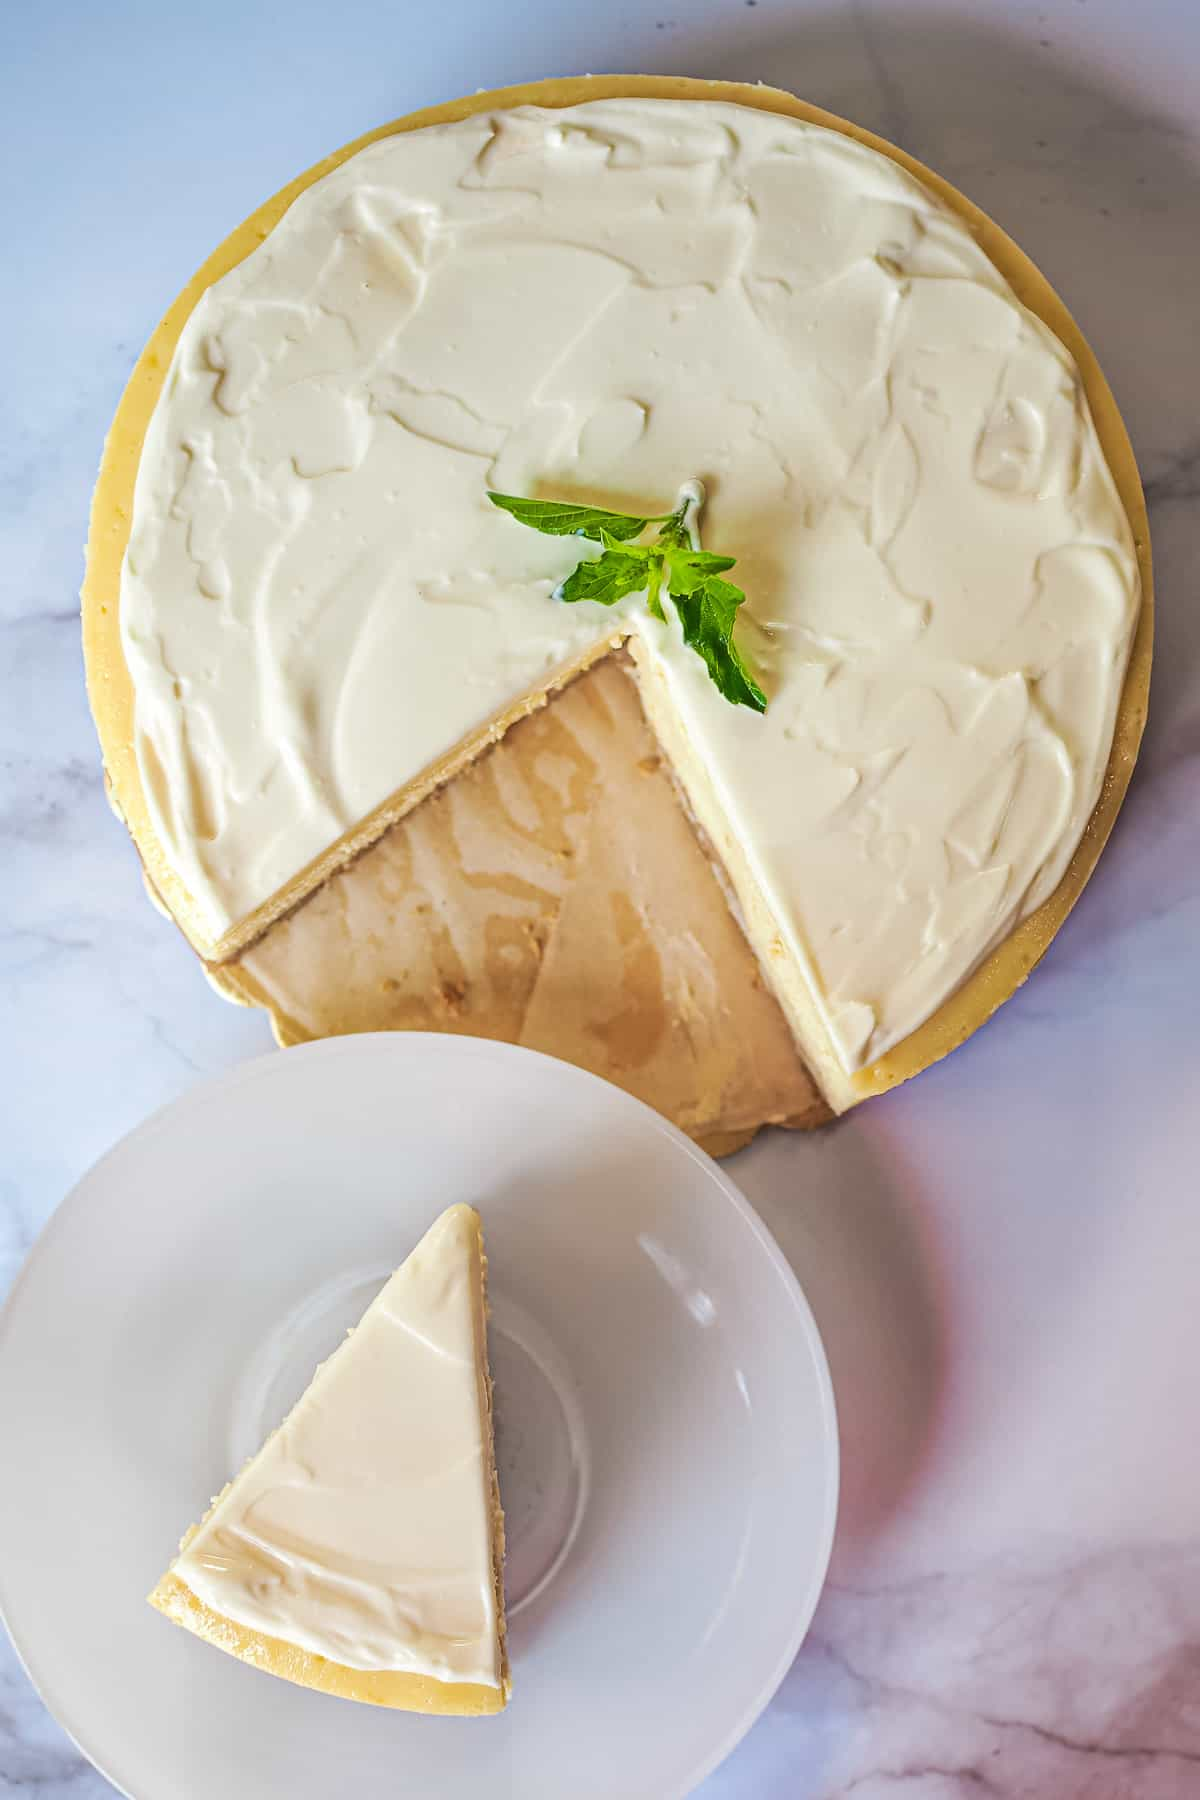 Top view of a round New York cheesecake, with a slice cut out